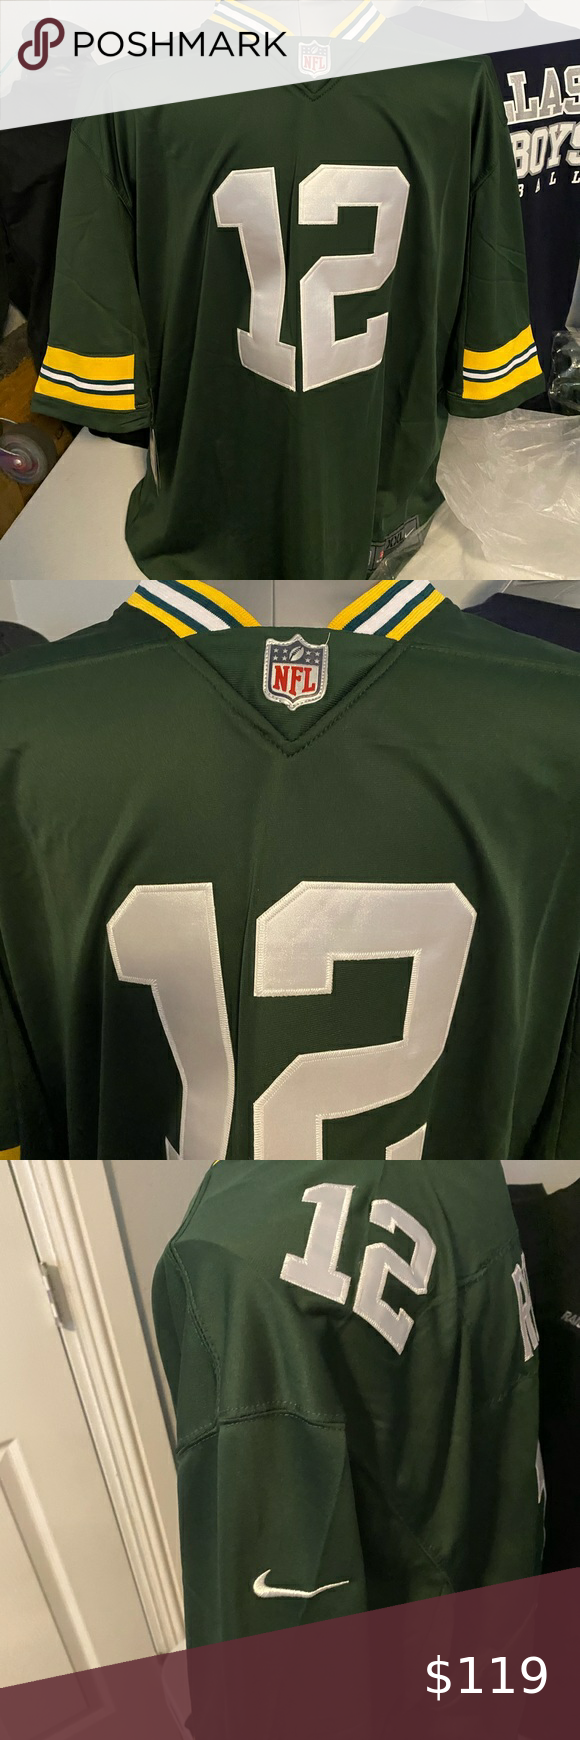 Green Bay Packers 12 Aaron Rodgers Nike Jersey In 2020 Nike Jersey Nike Shirts Mens Shirts